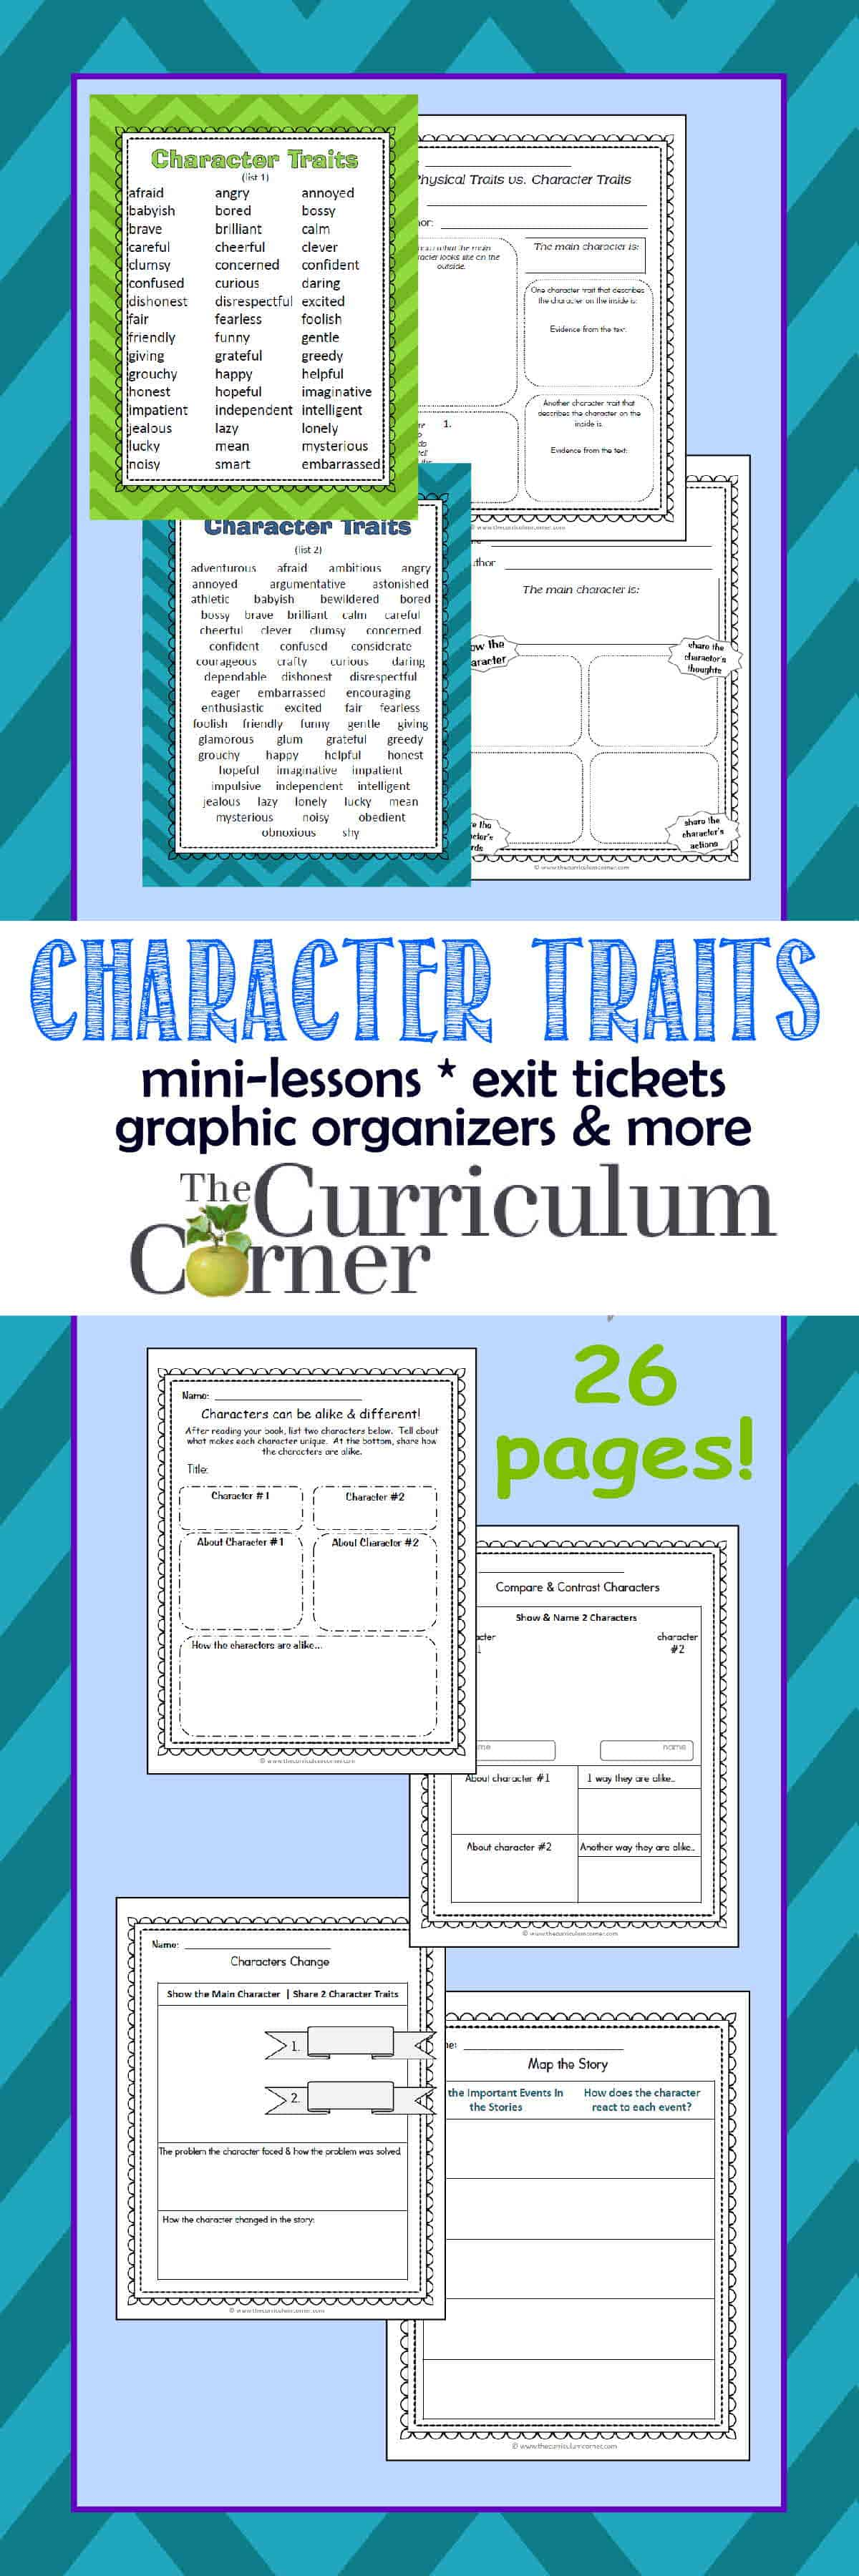 hight resolution of Character Traits Resources - The Curriculum Corner 4-5-6